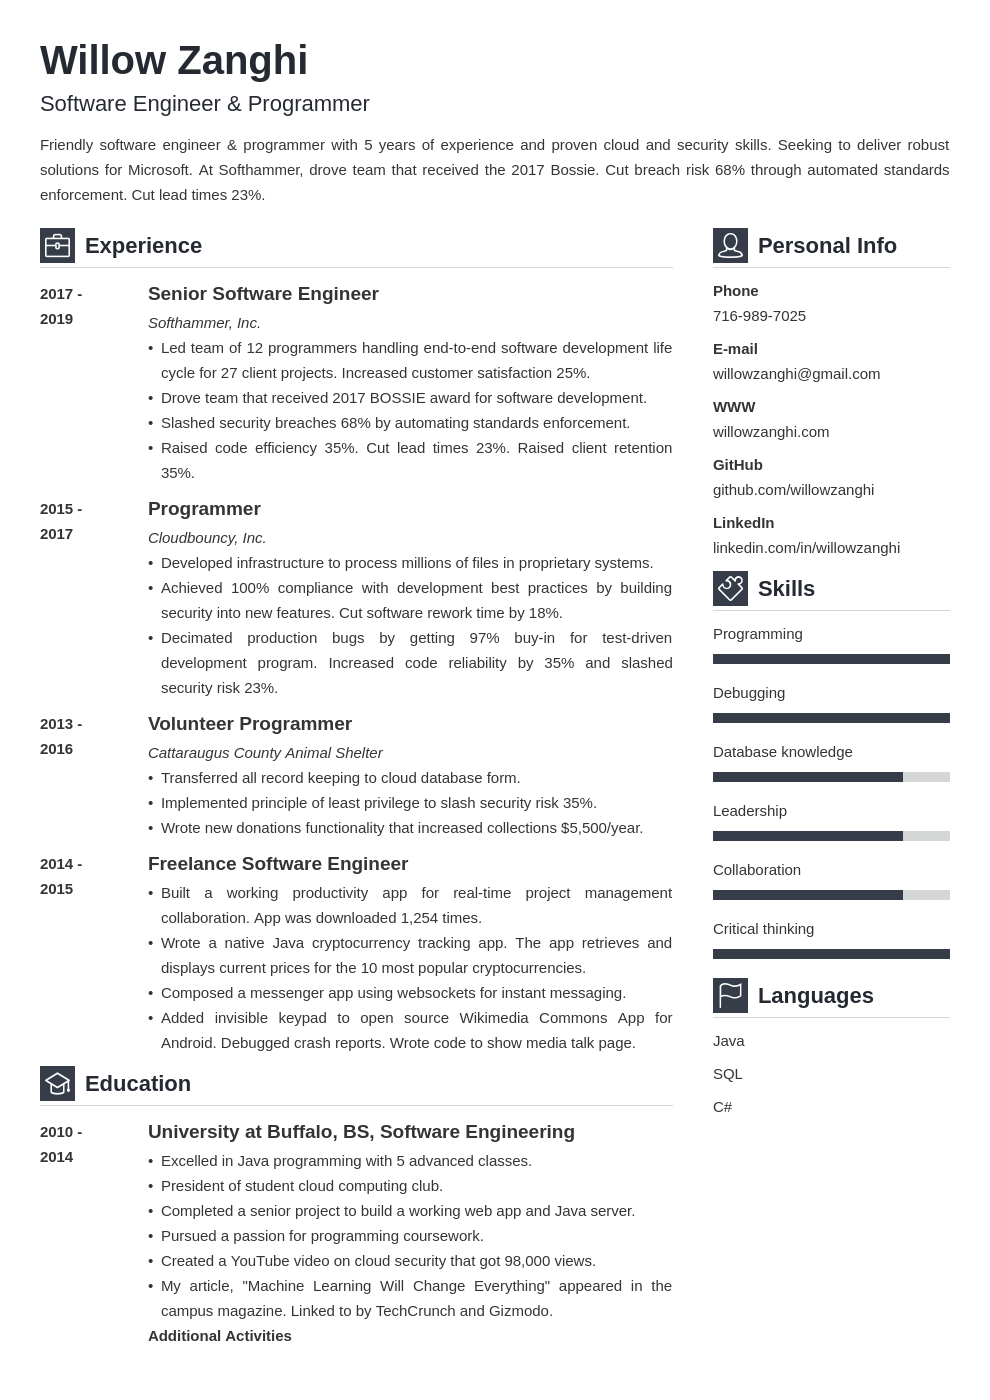 resume chronological template vibes uk